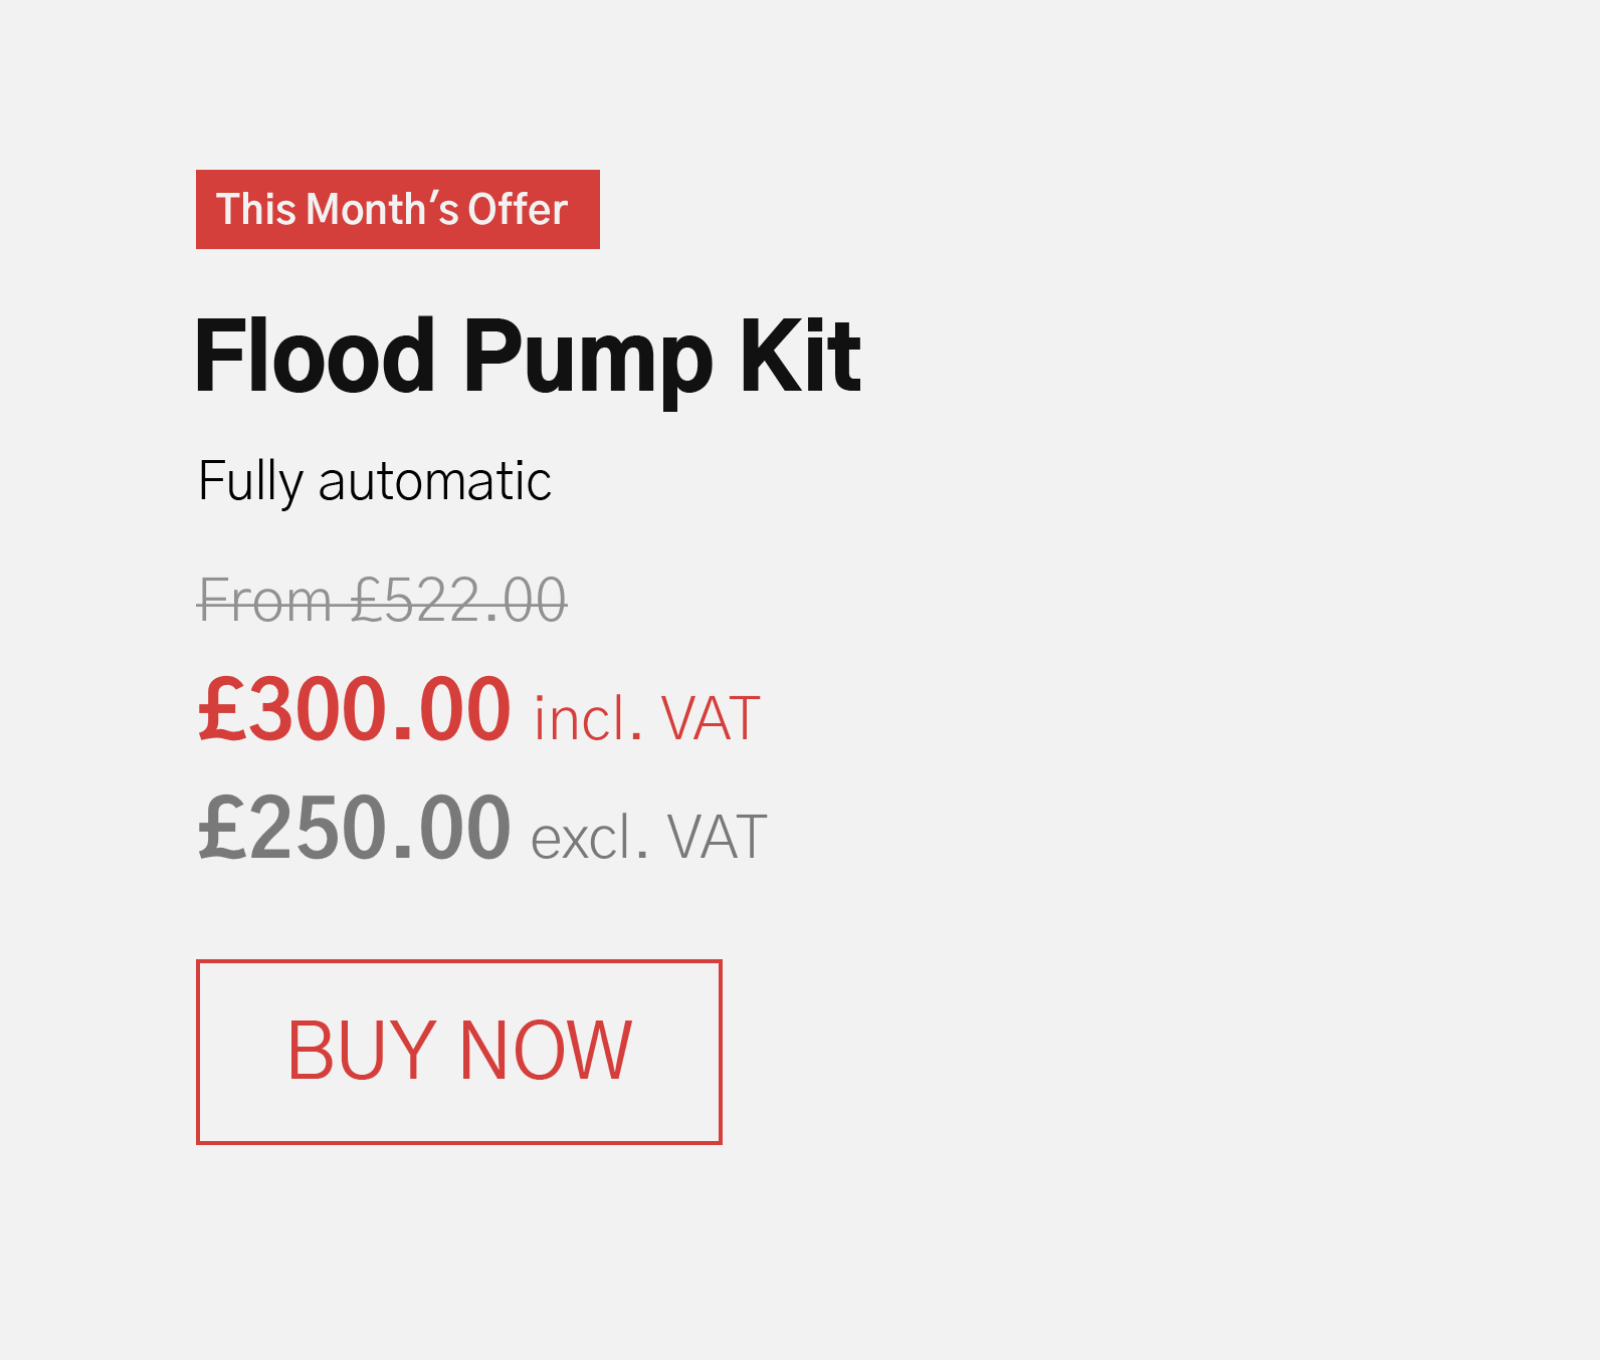 Flood Pump Kit